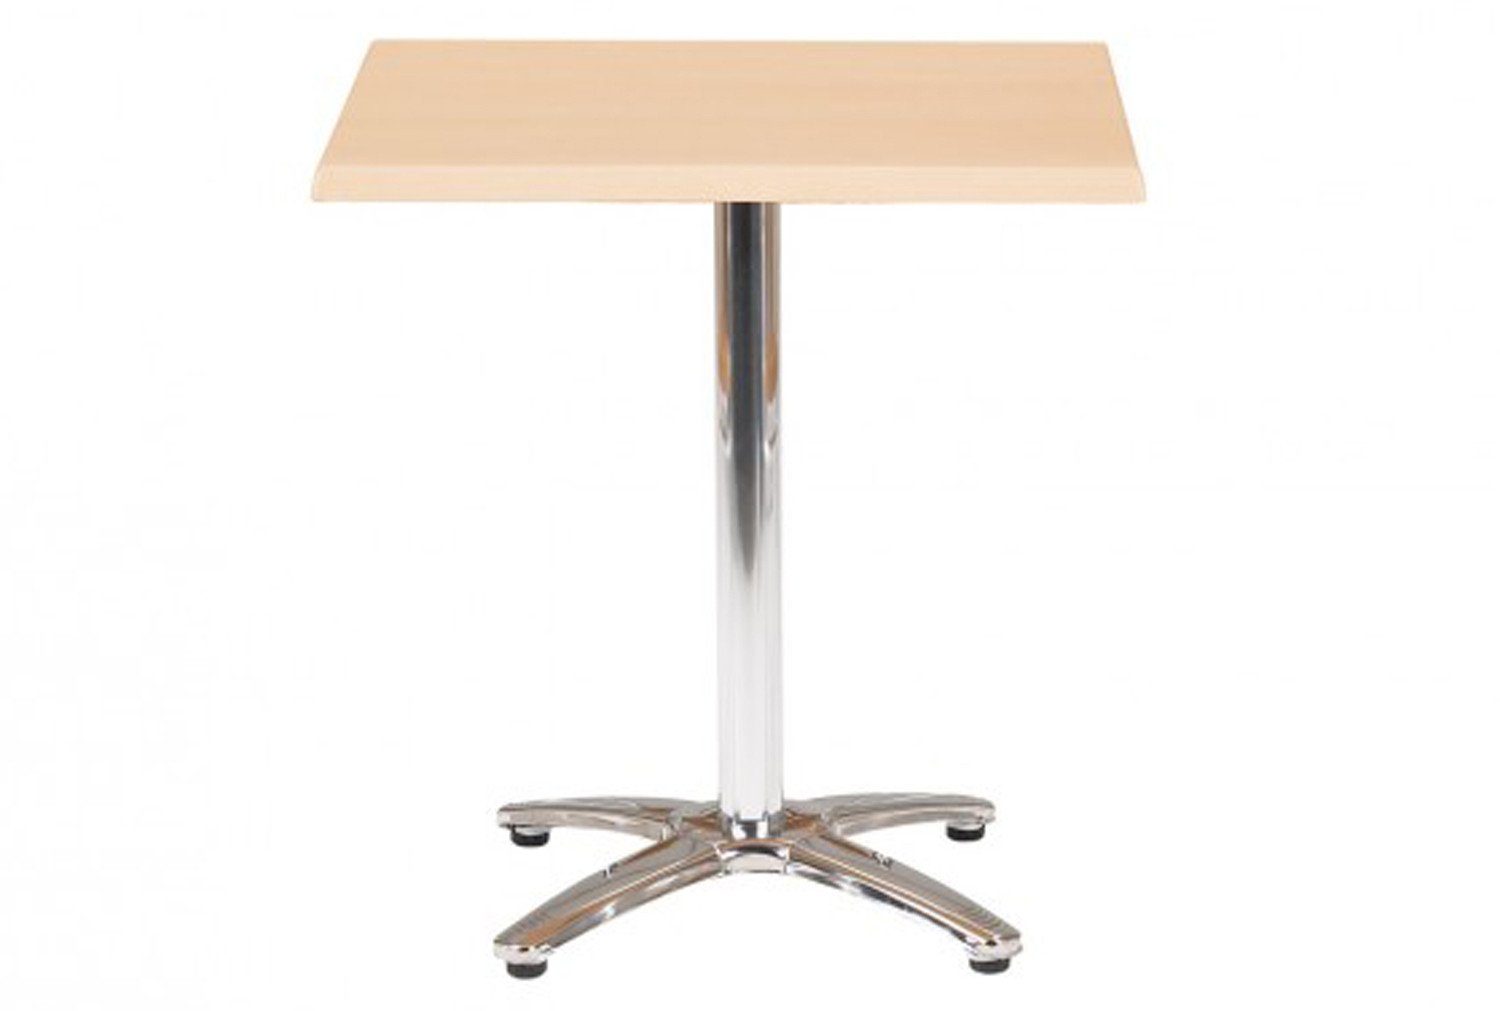 Casa square table